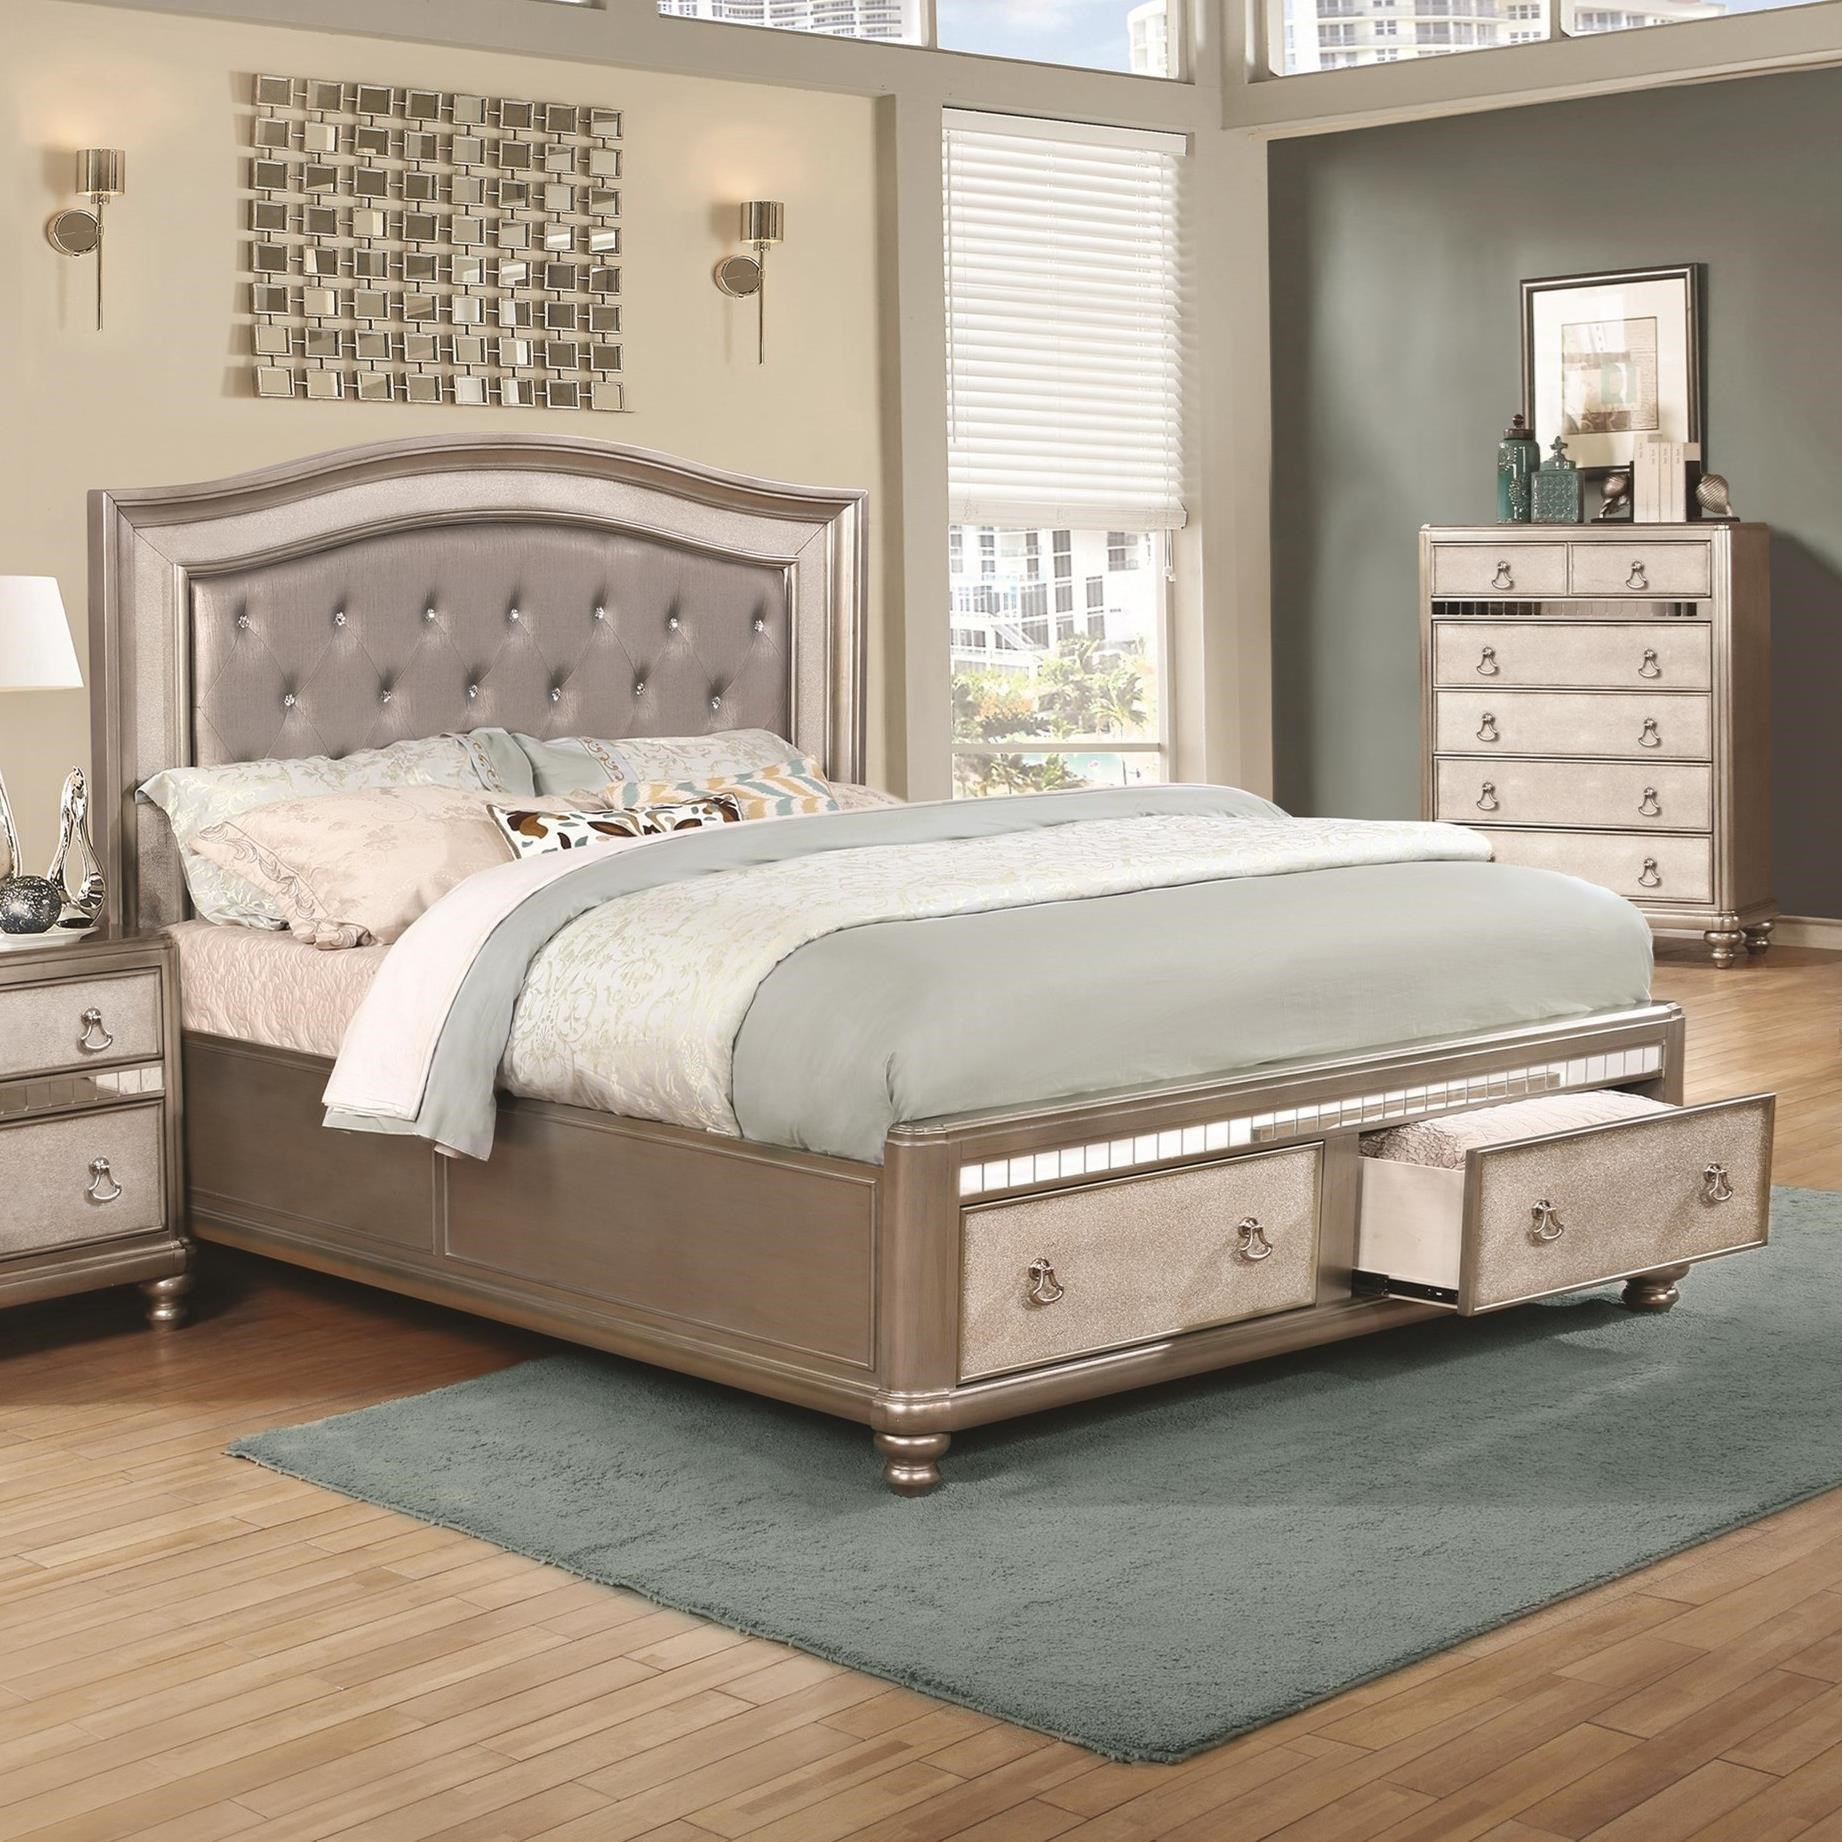 Bling Game Upholstered King Bed by Coaster at Standard Furniture